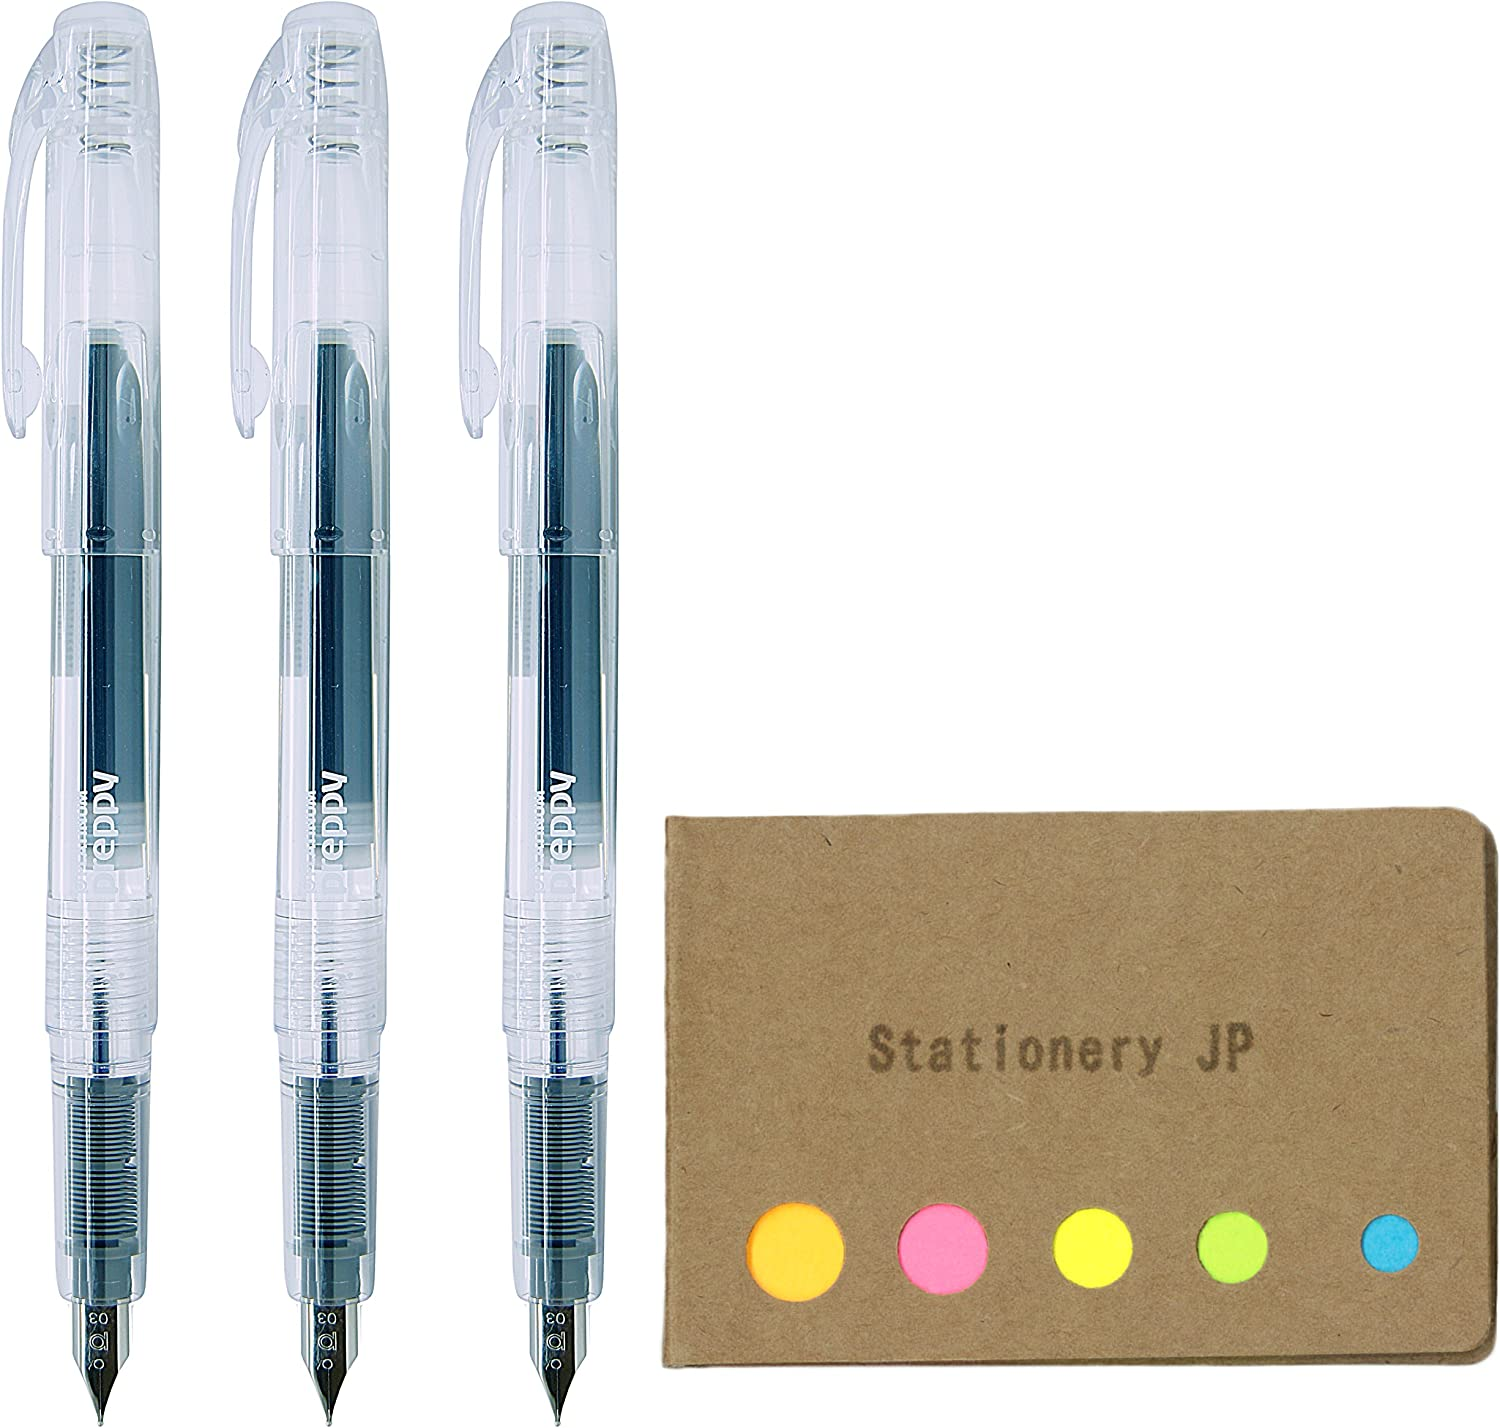 Platinum Preppy Rainbow Fountain Pen, Fine Point 03, Clear Body, 3-Pack, Sticky Notes Value Set